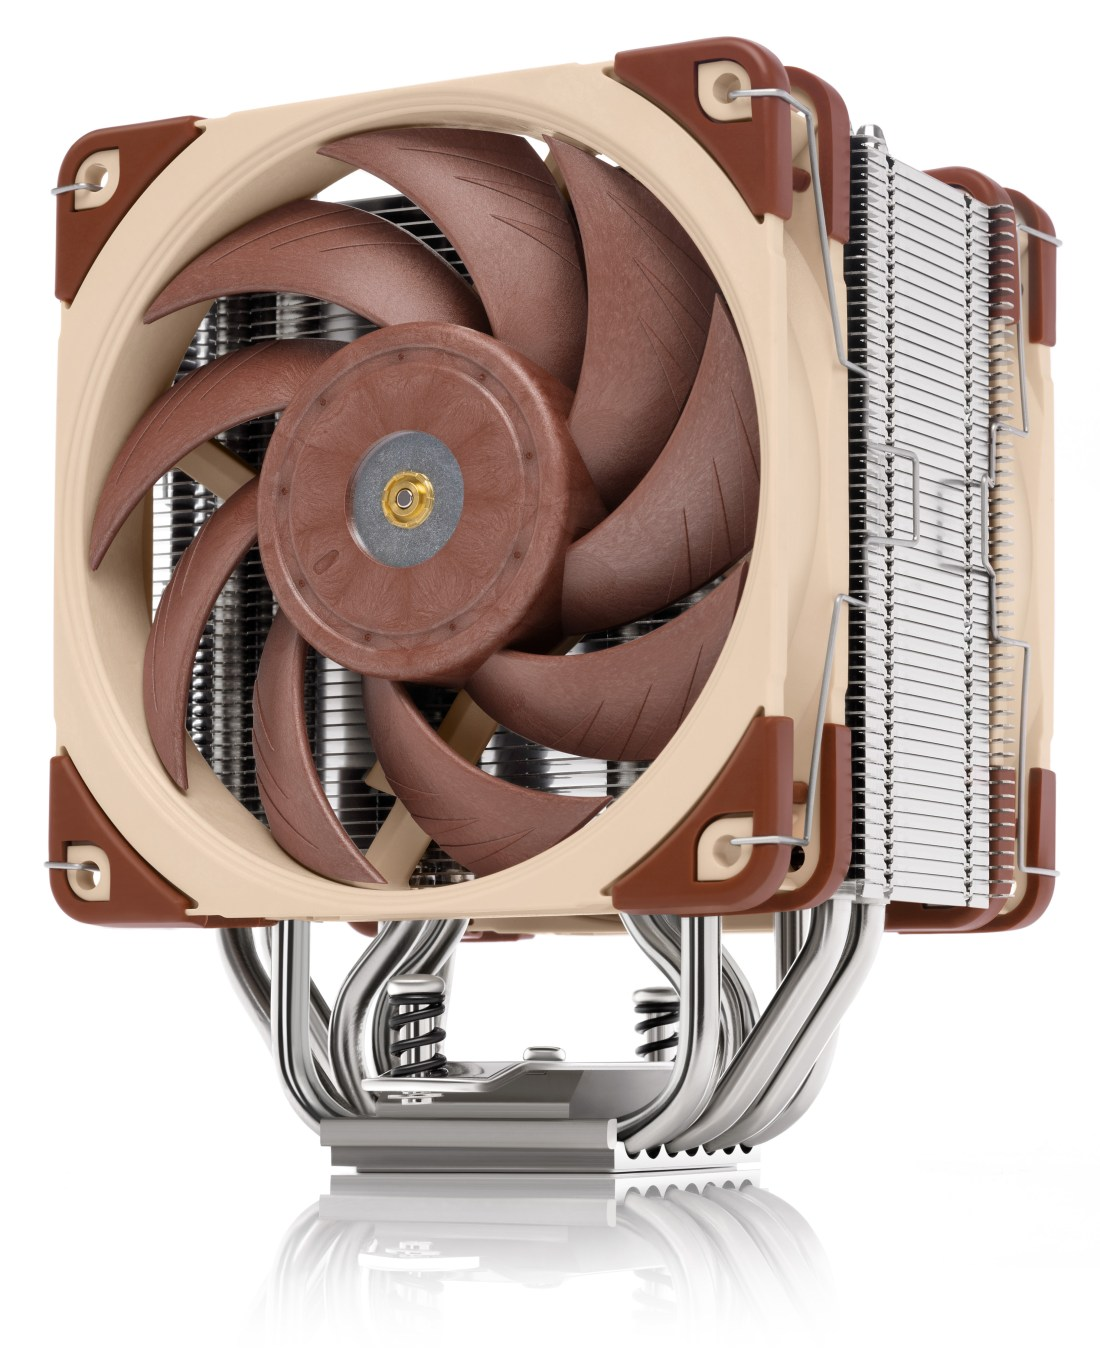 Noctua Presents NH-U12A Premium Class 120mm CPU Cooler 1